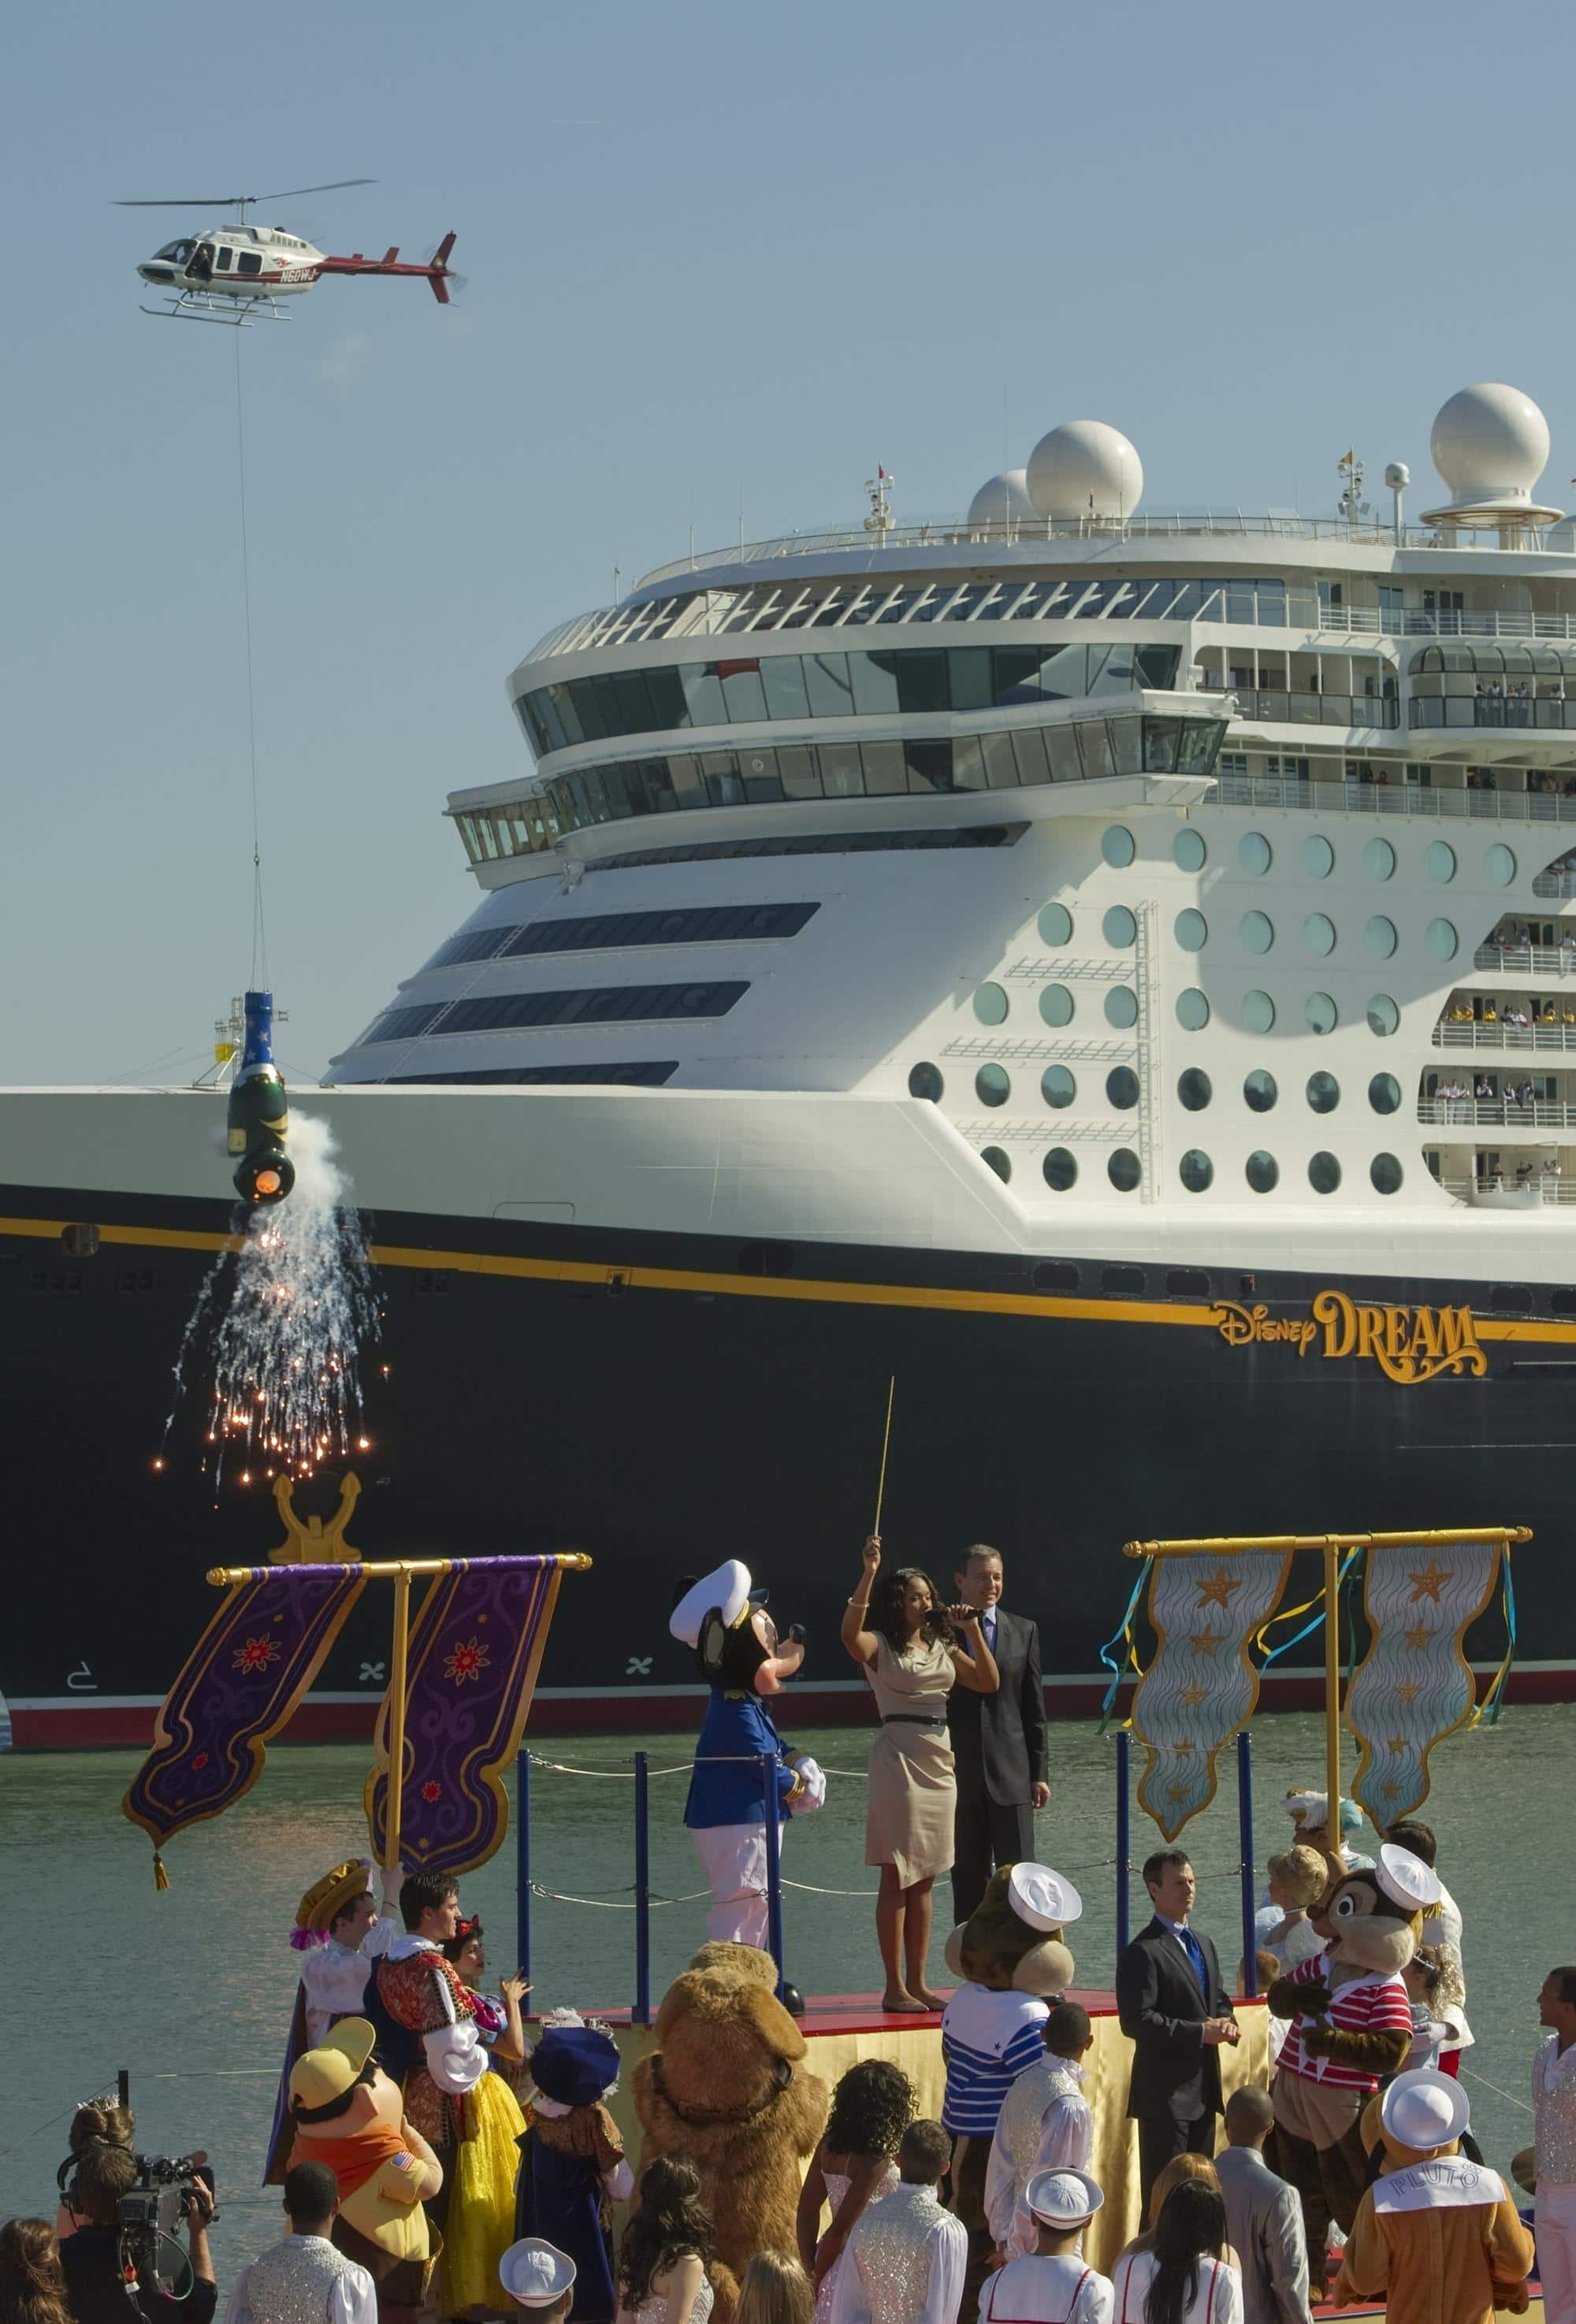 "Helicopter toting a gigantic Champagne bottle ""filled with dreams"" at Disney Dream christening ceremony"